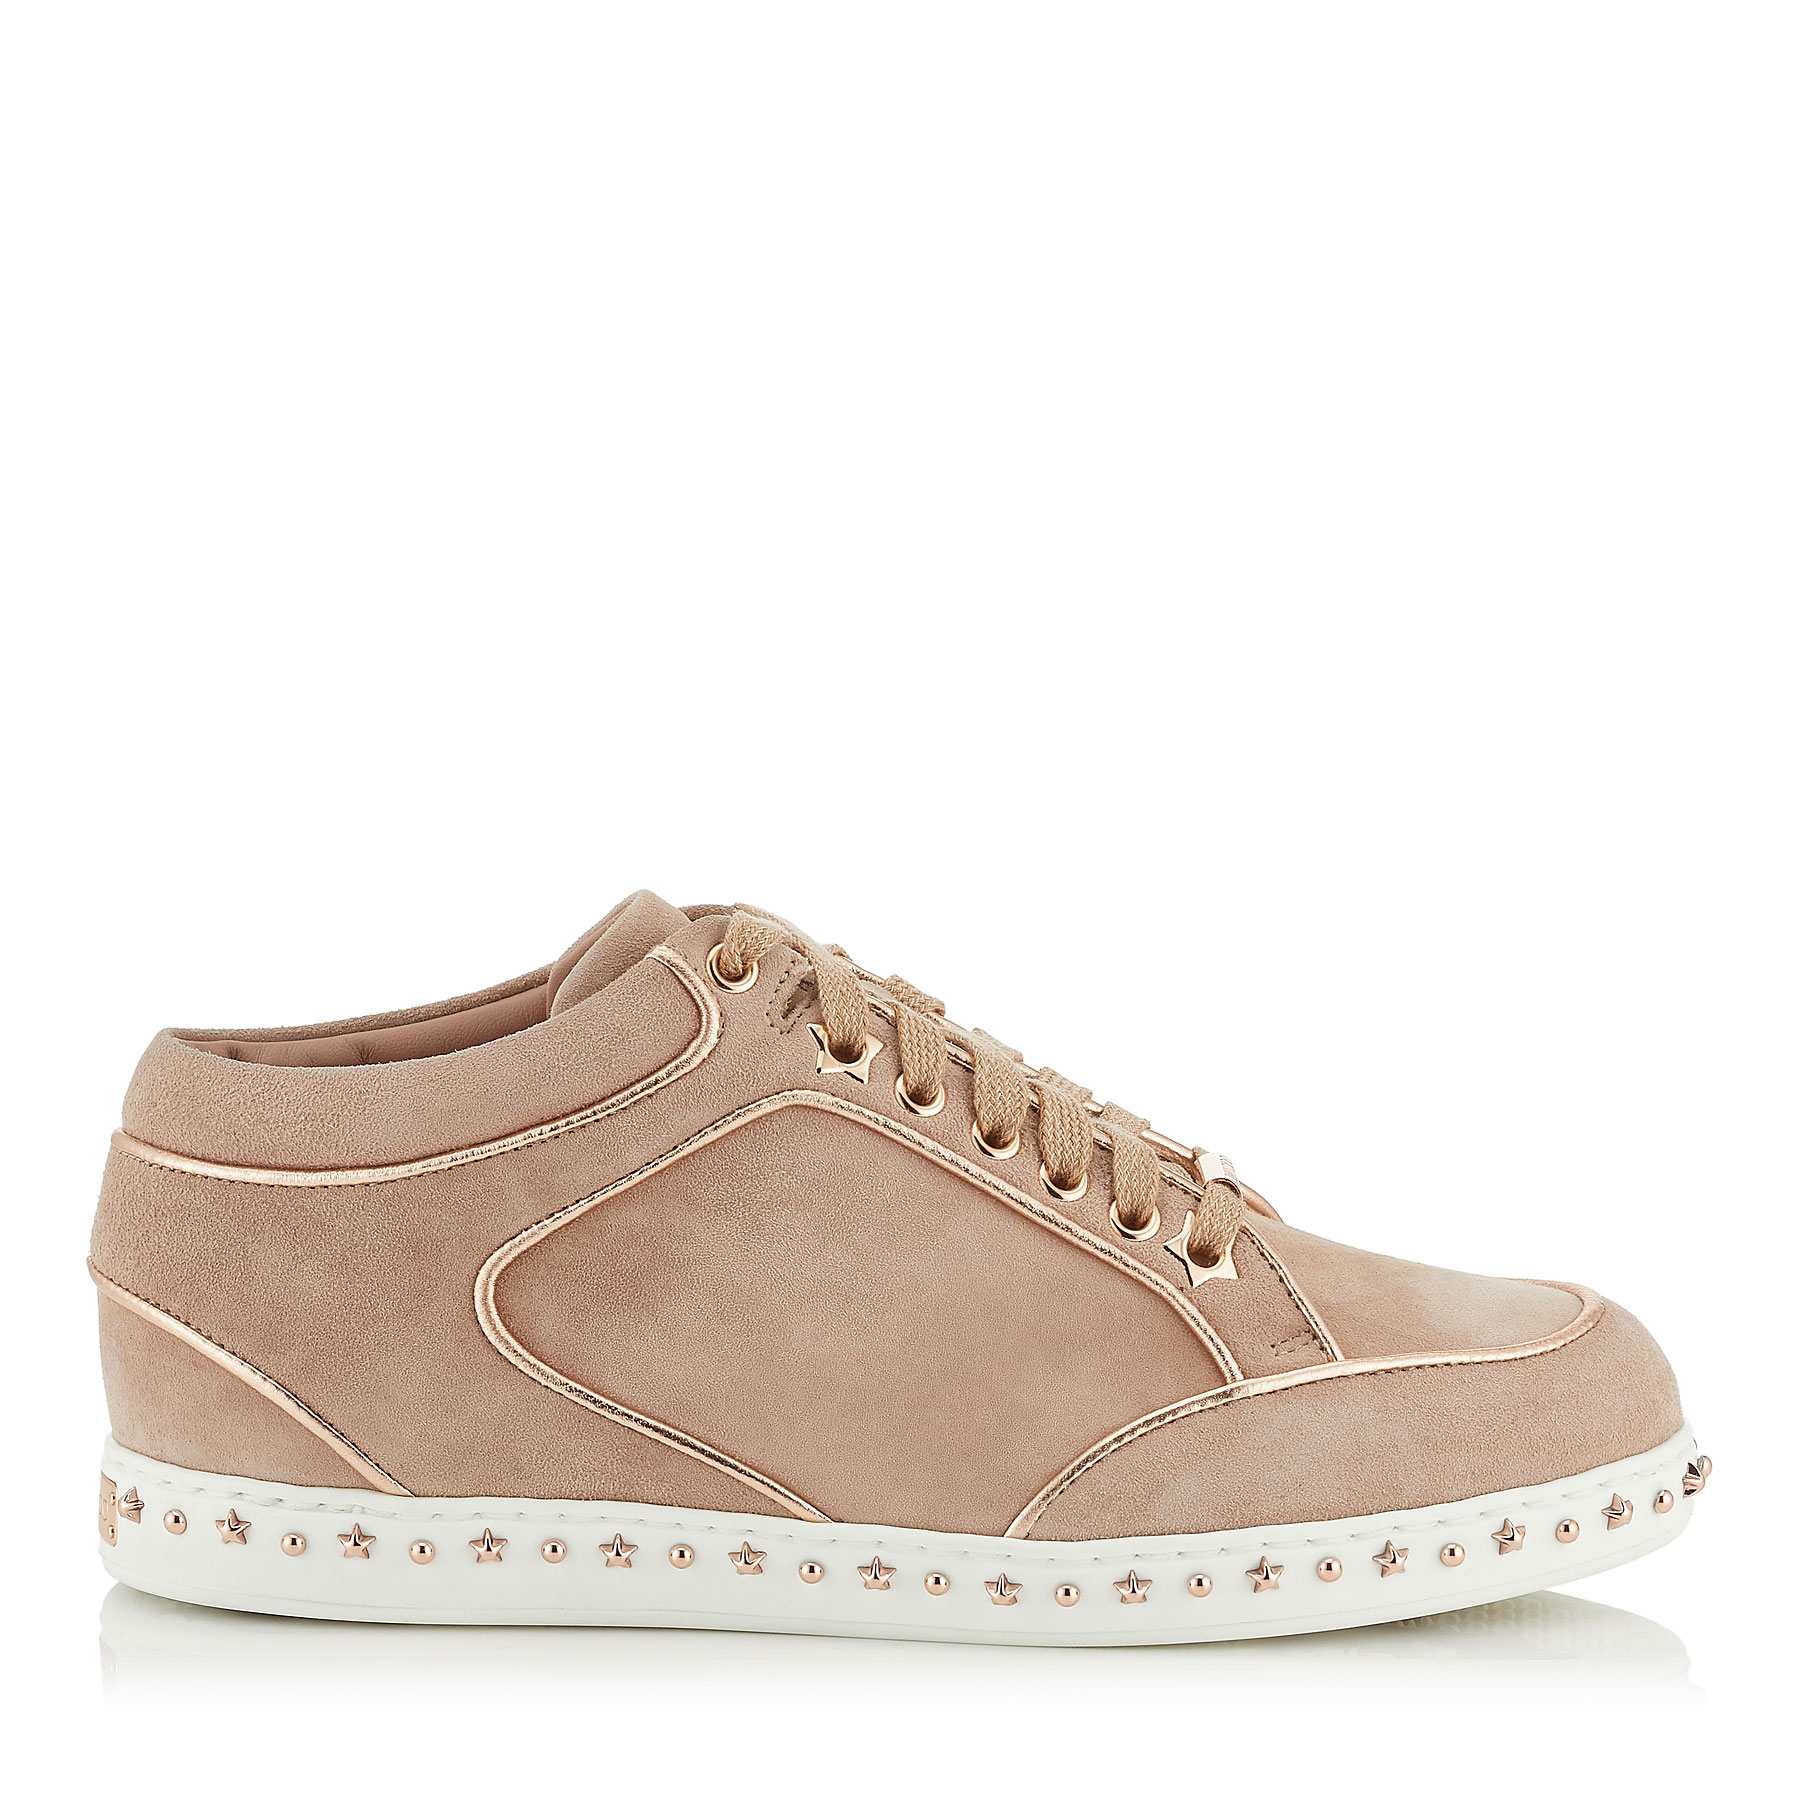 MIAMI Ballet Pink Suede Trainers with Metallic Nappa Leather Piping by Jimmy Choo